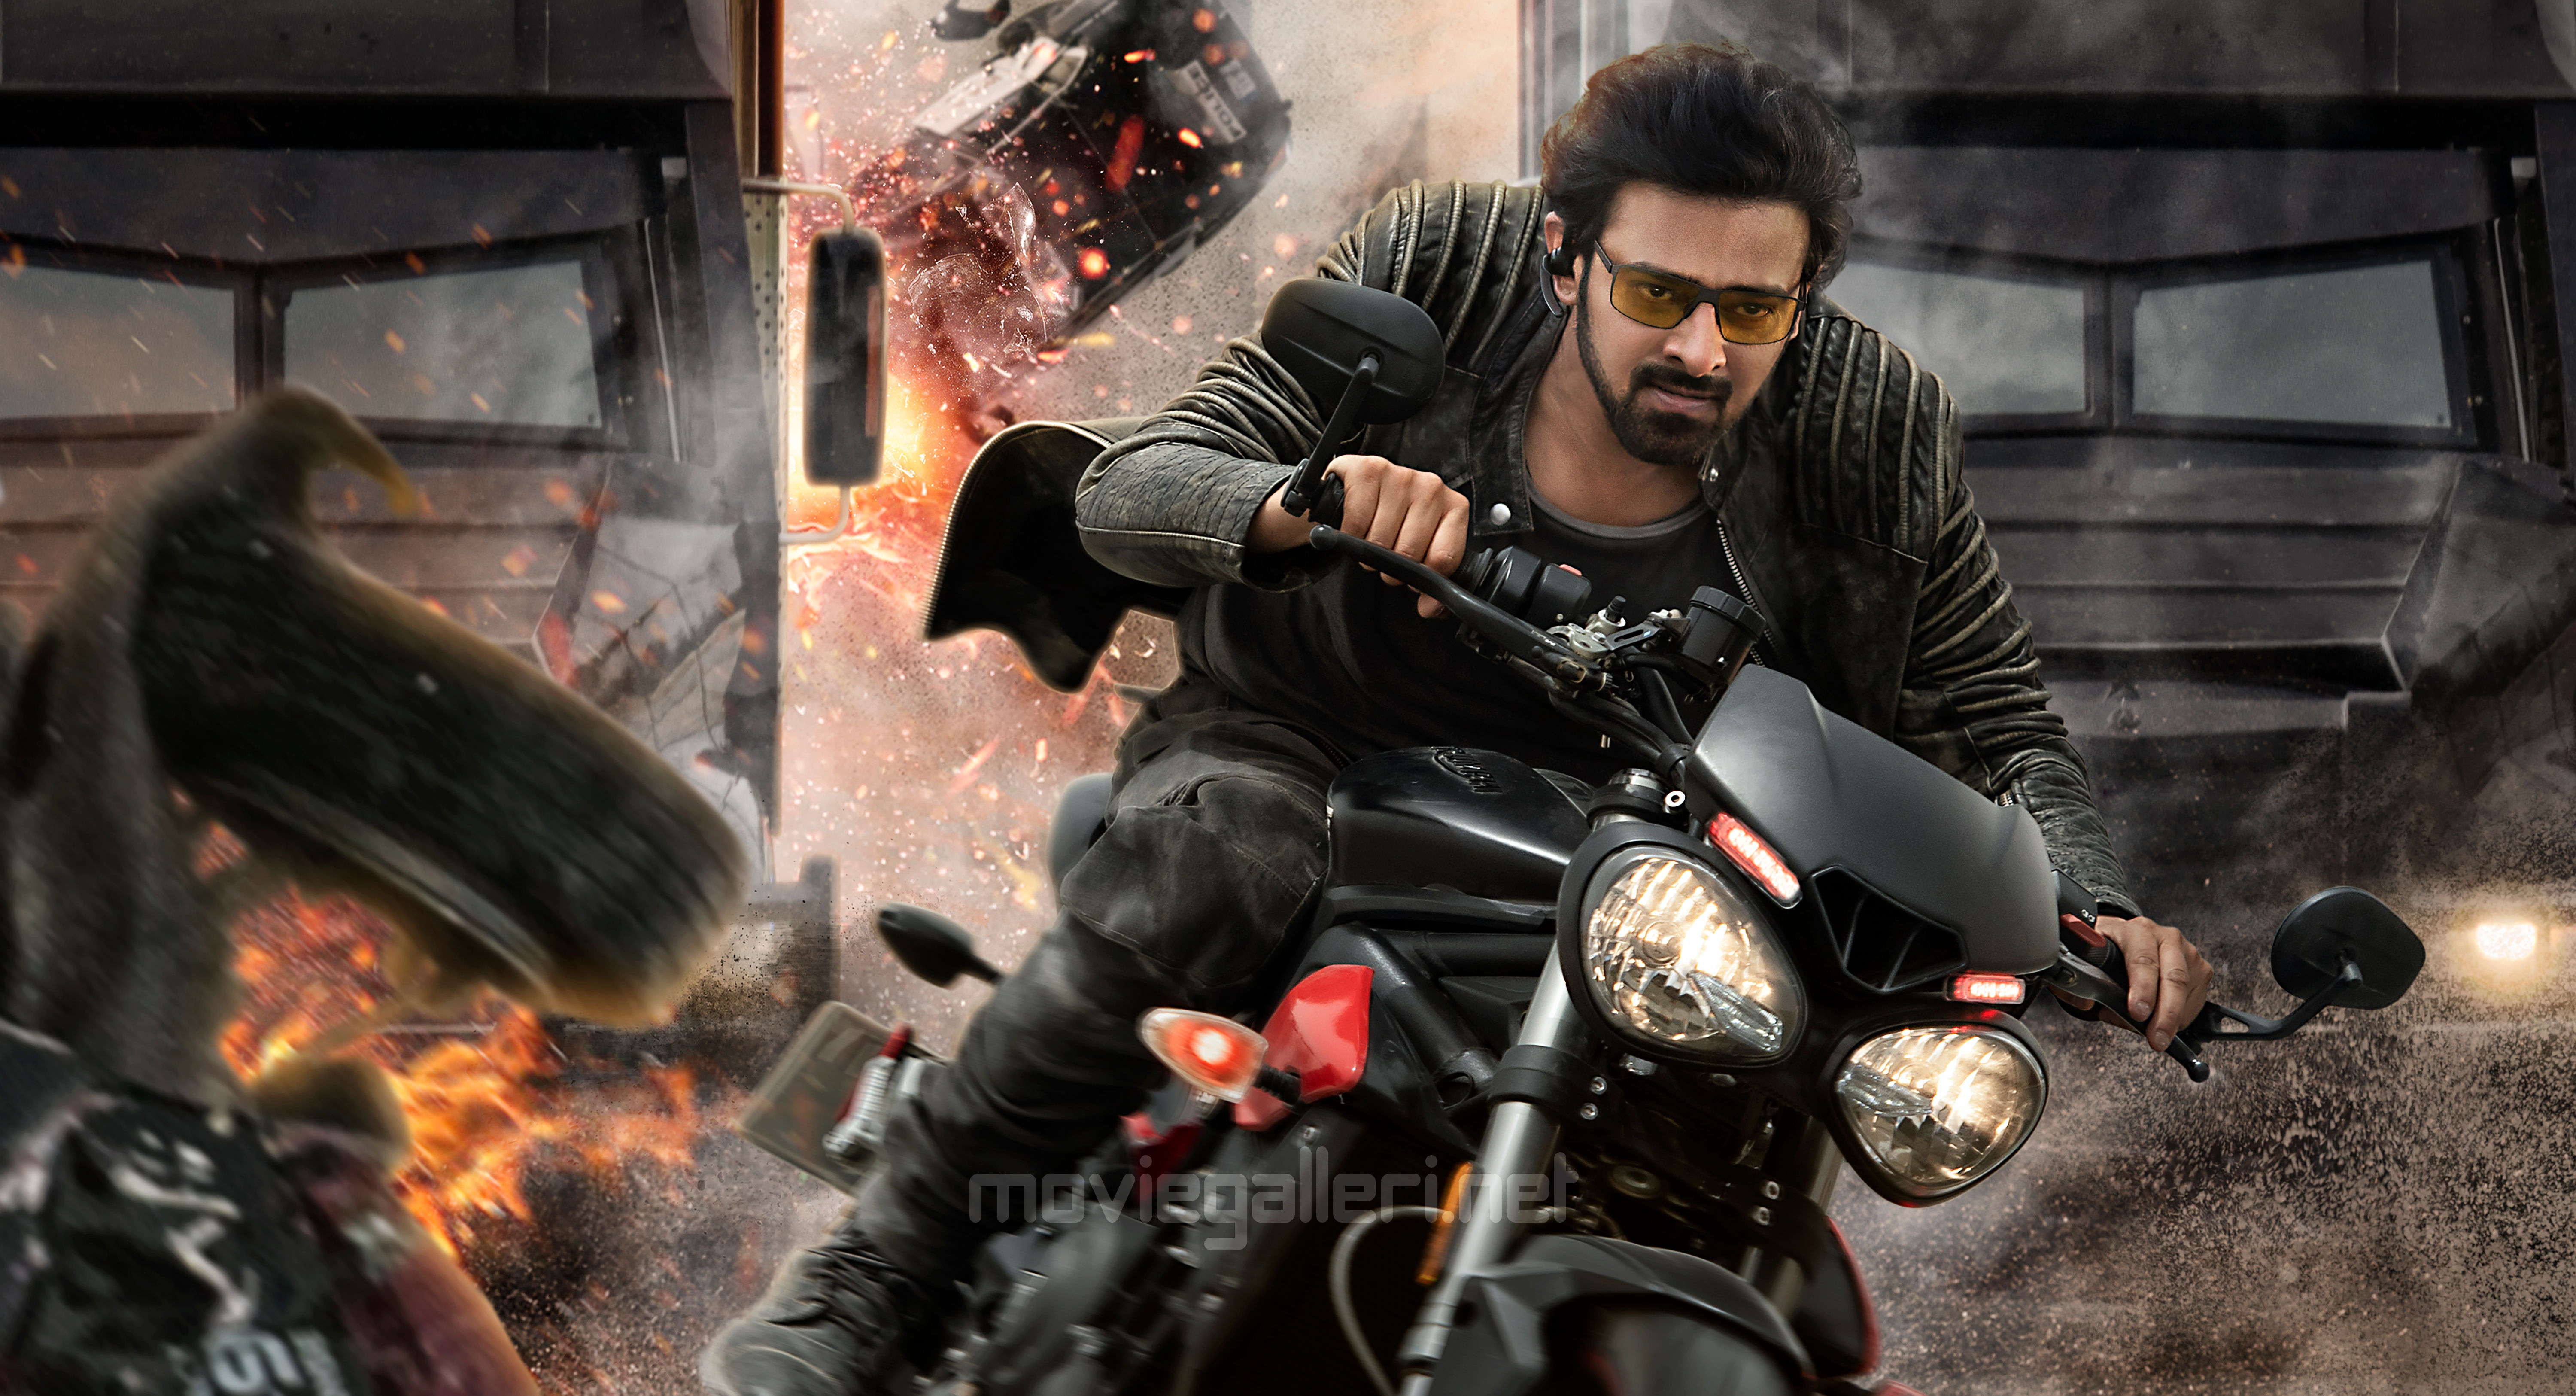 Prabhas Saaho release date shifted to August 30